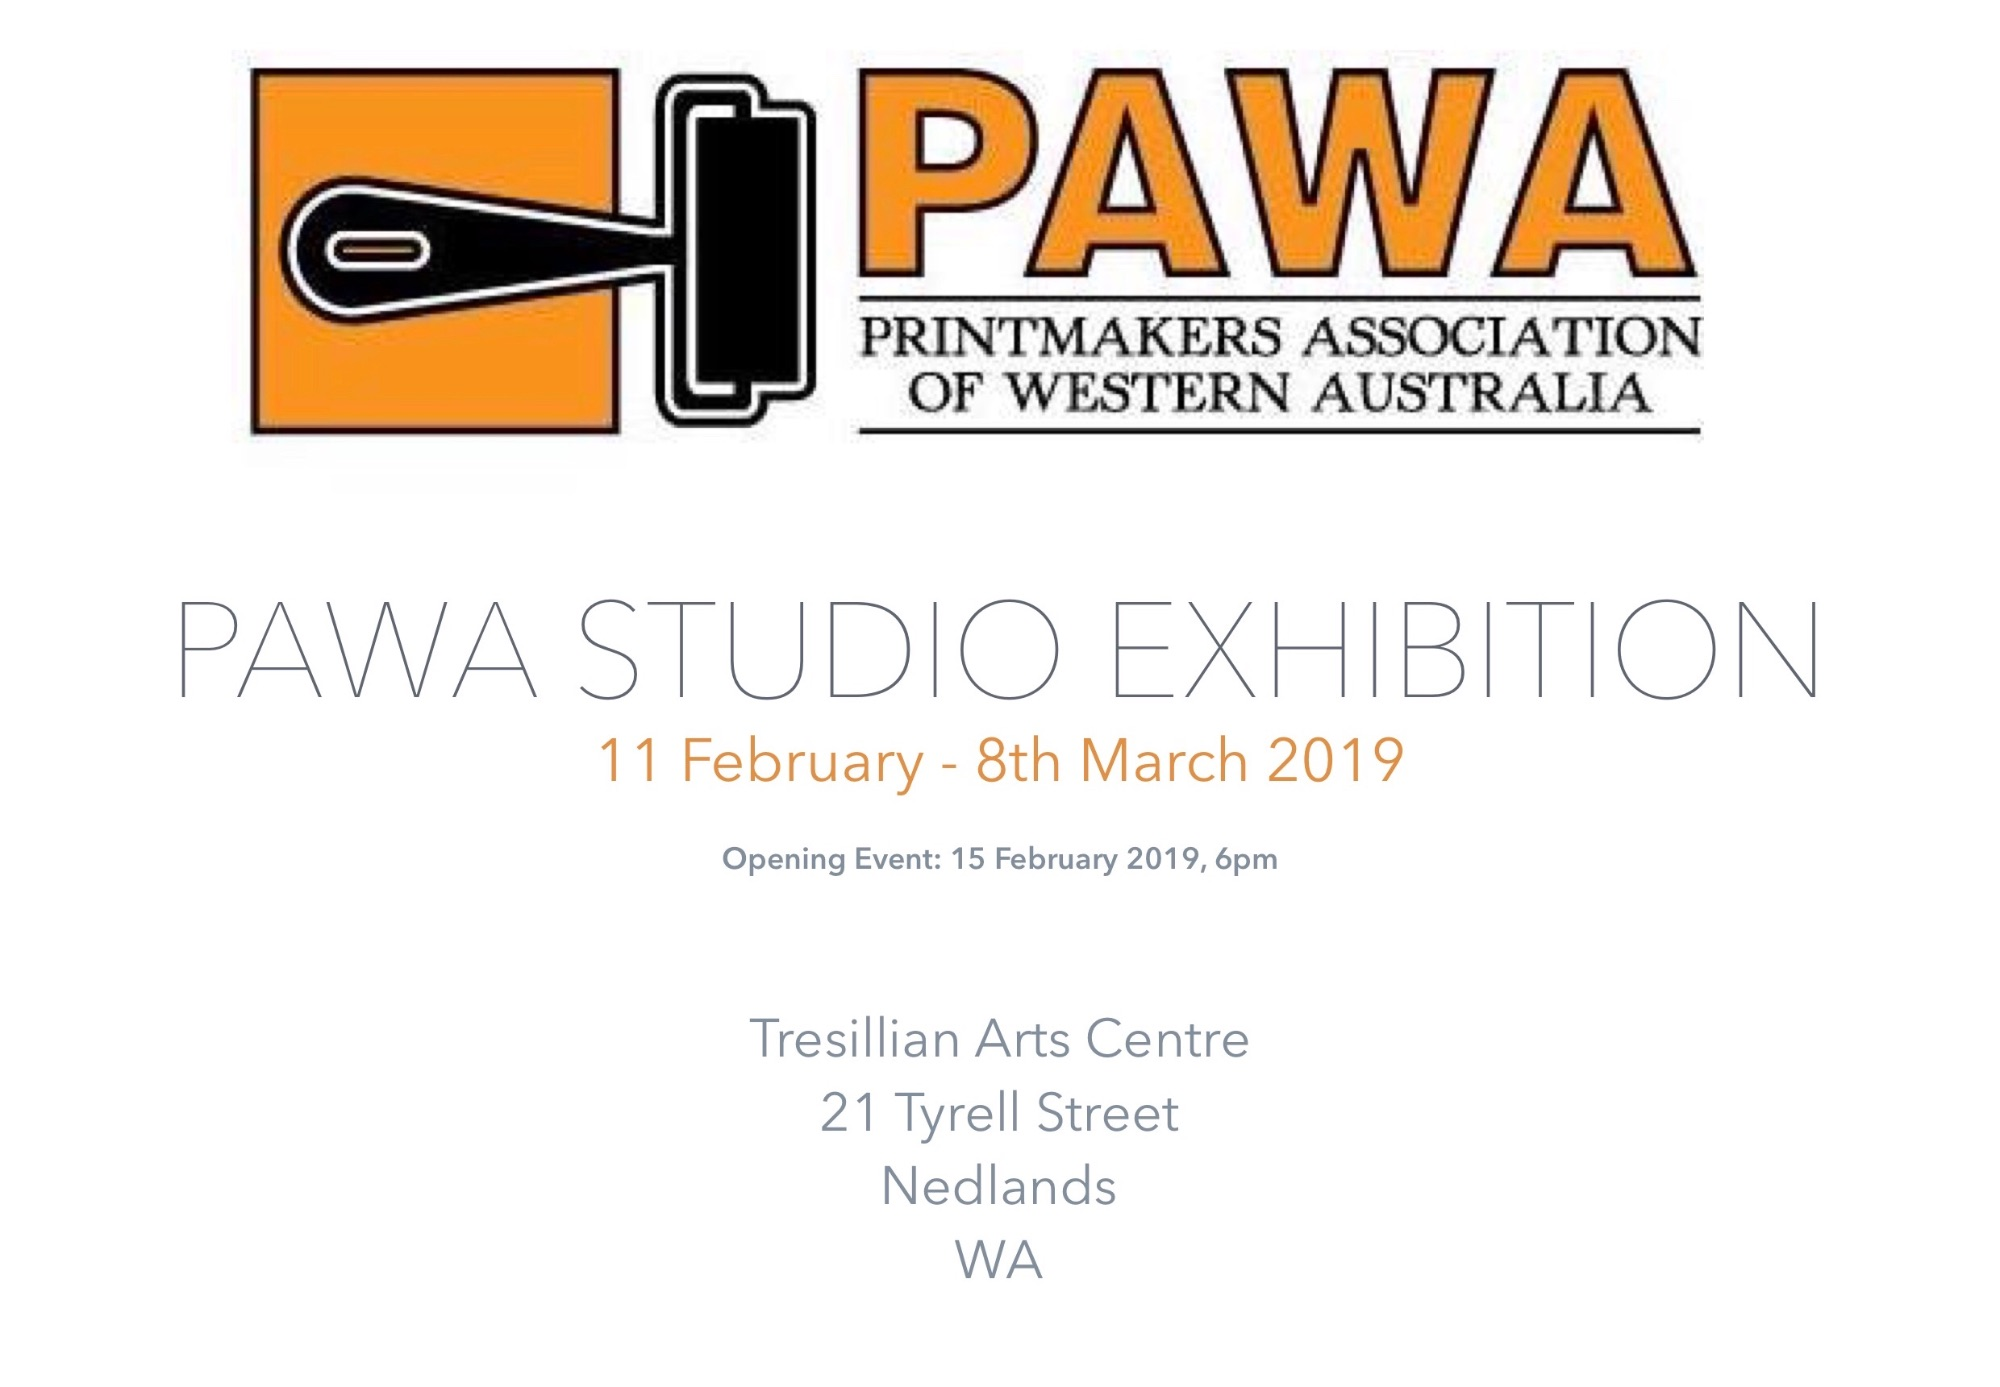 PAWA Exhibition 2019